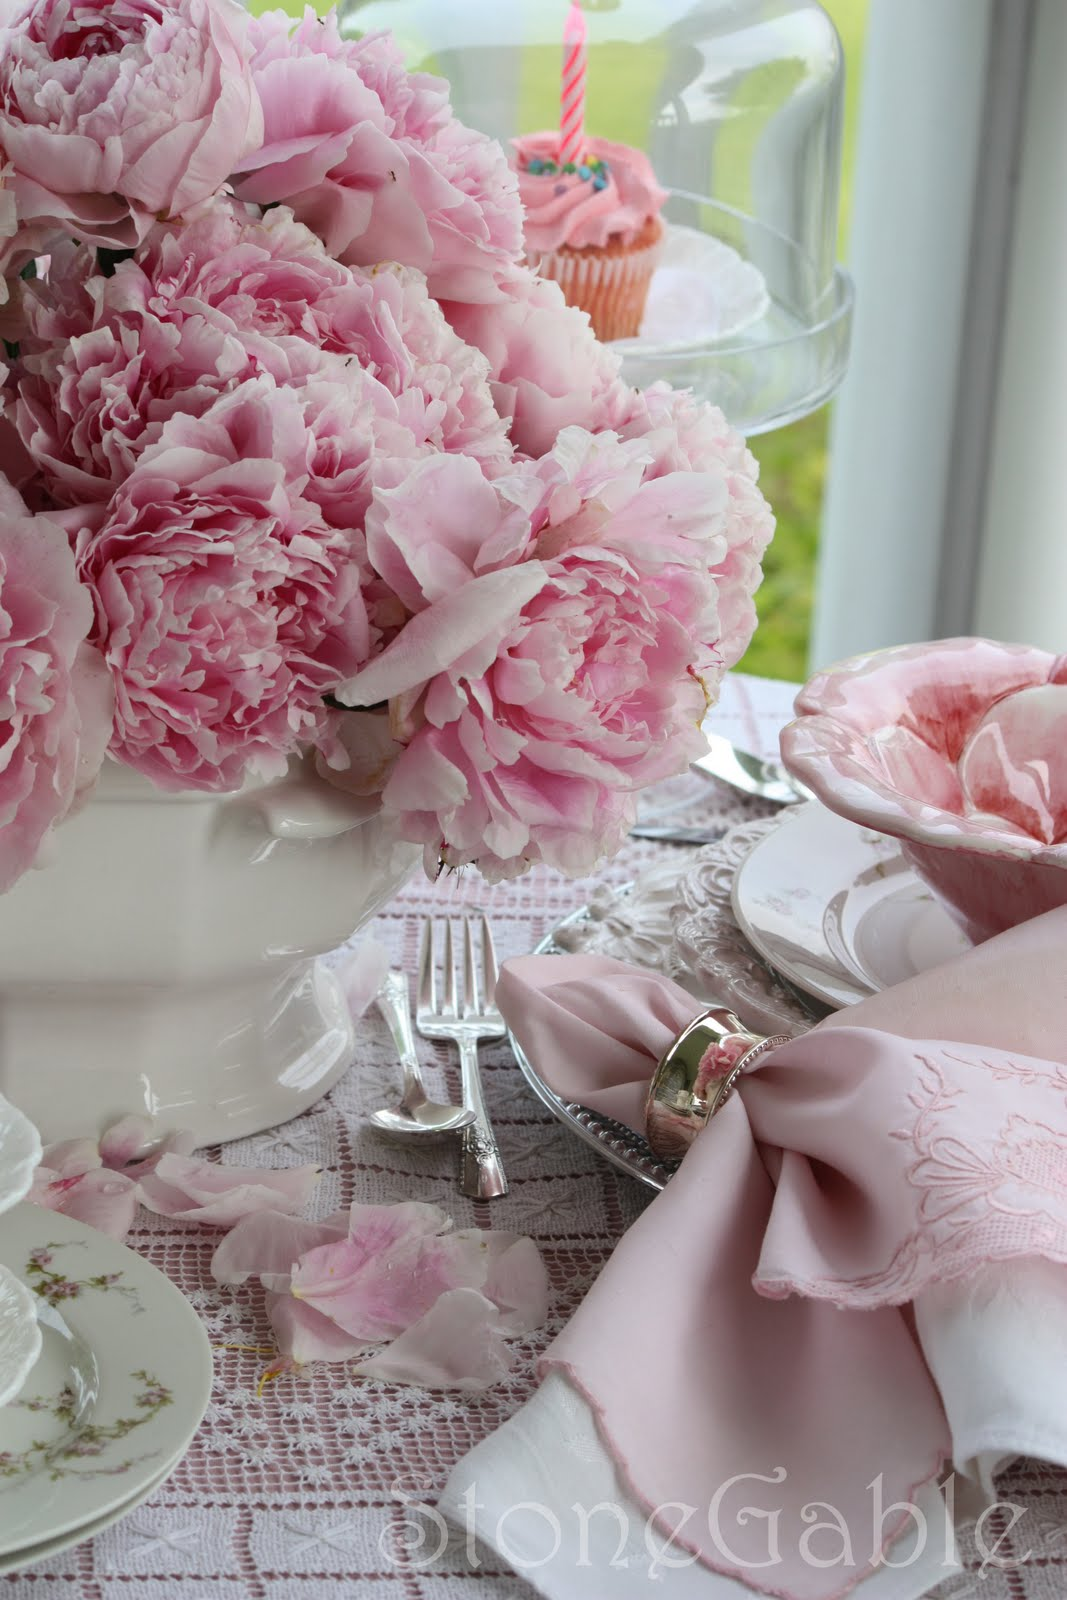 Pink peony tablescape and birthday party stonegable happy birthday pink saturday beverly you have brought so much fun creativity and joy to many bloggers followers and friends heres to many more izmirmasajfo